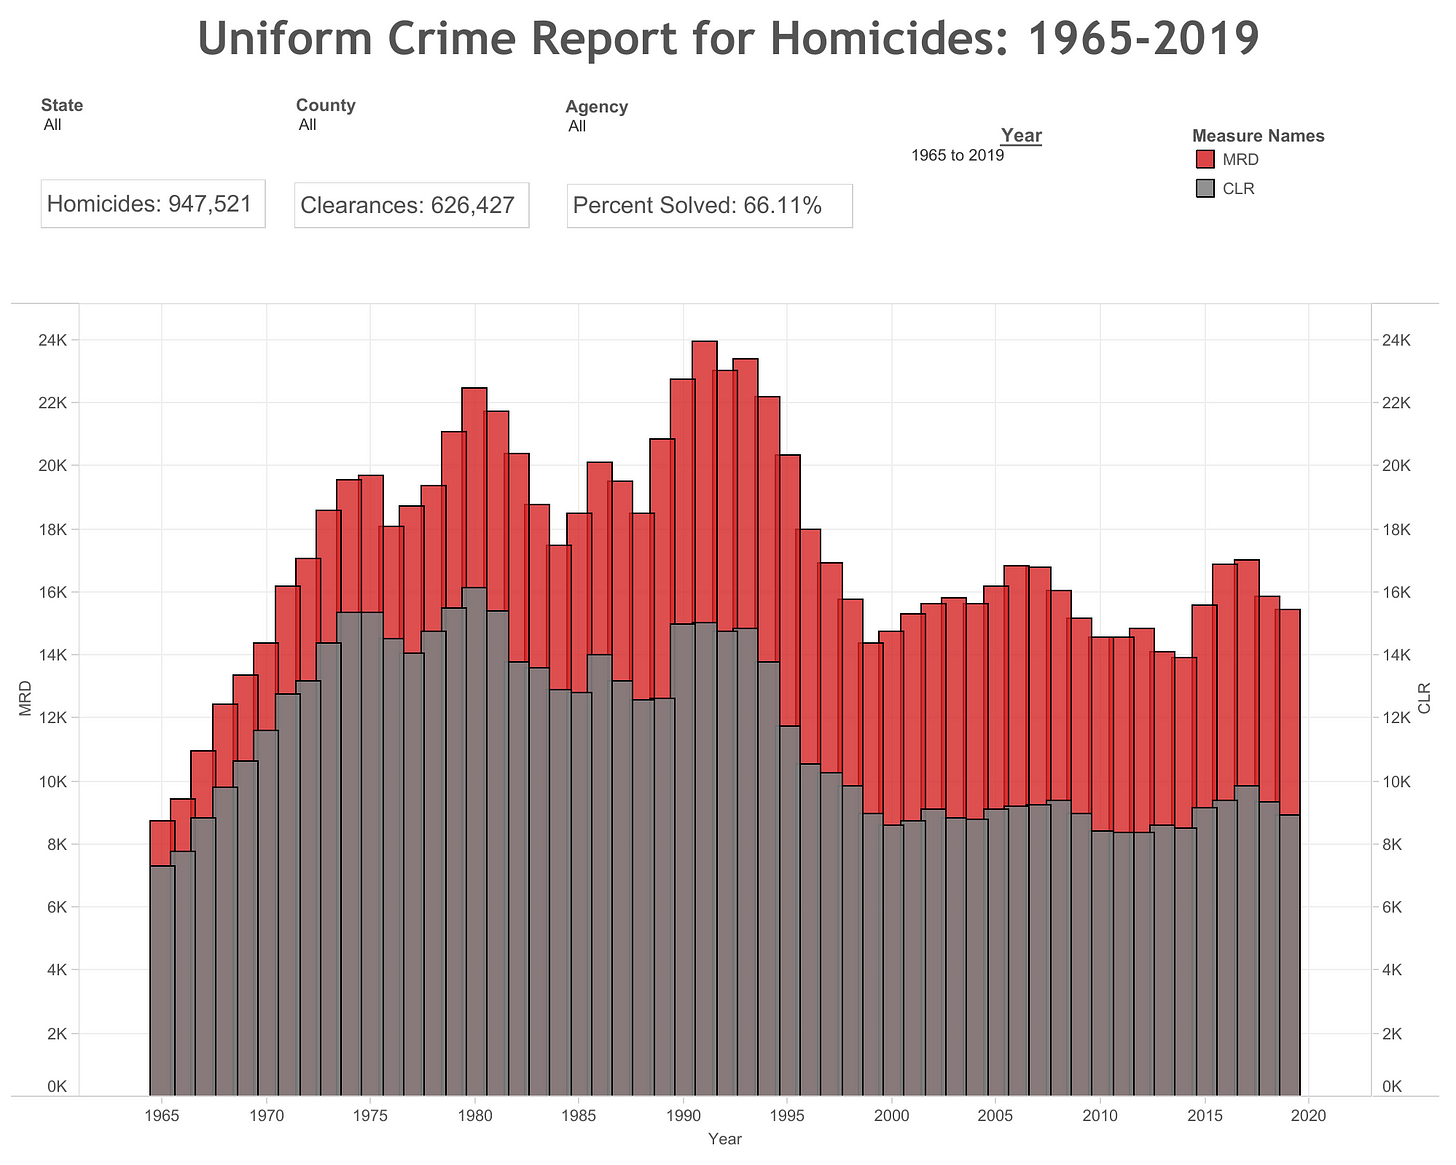 graph showing a uniform crime report for homicides from 1965 to 2020